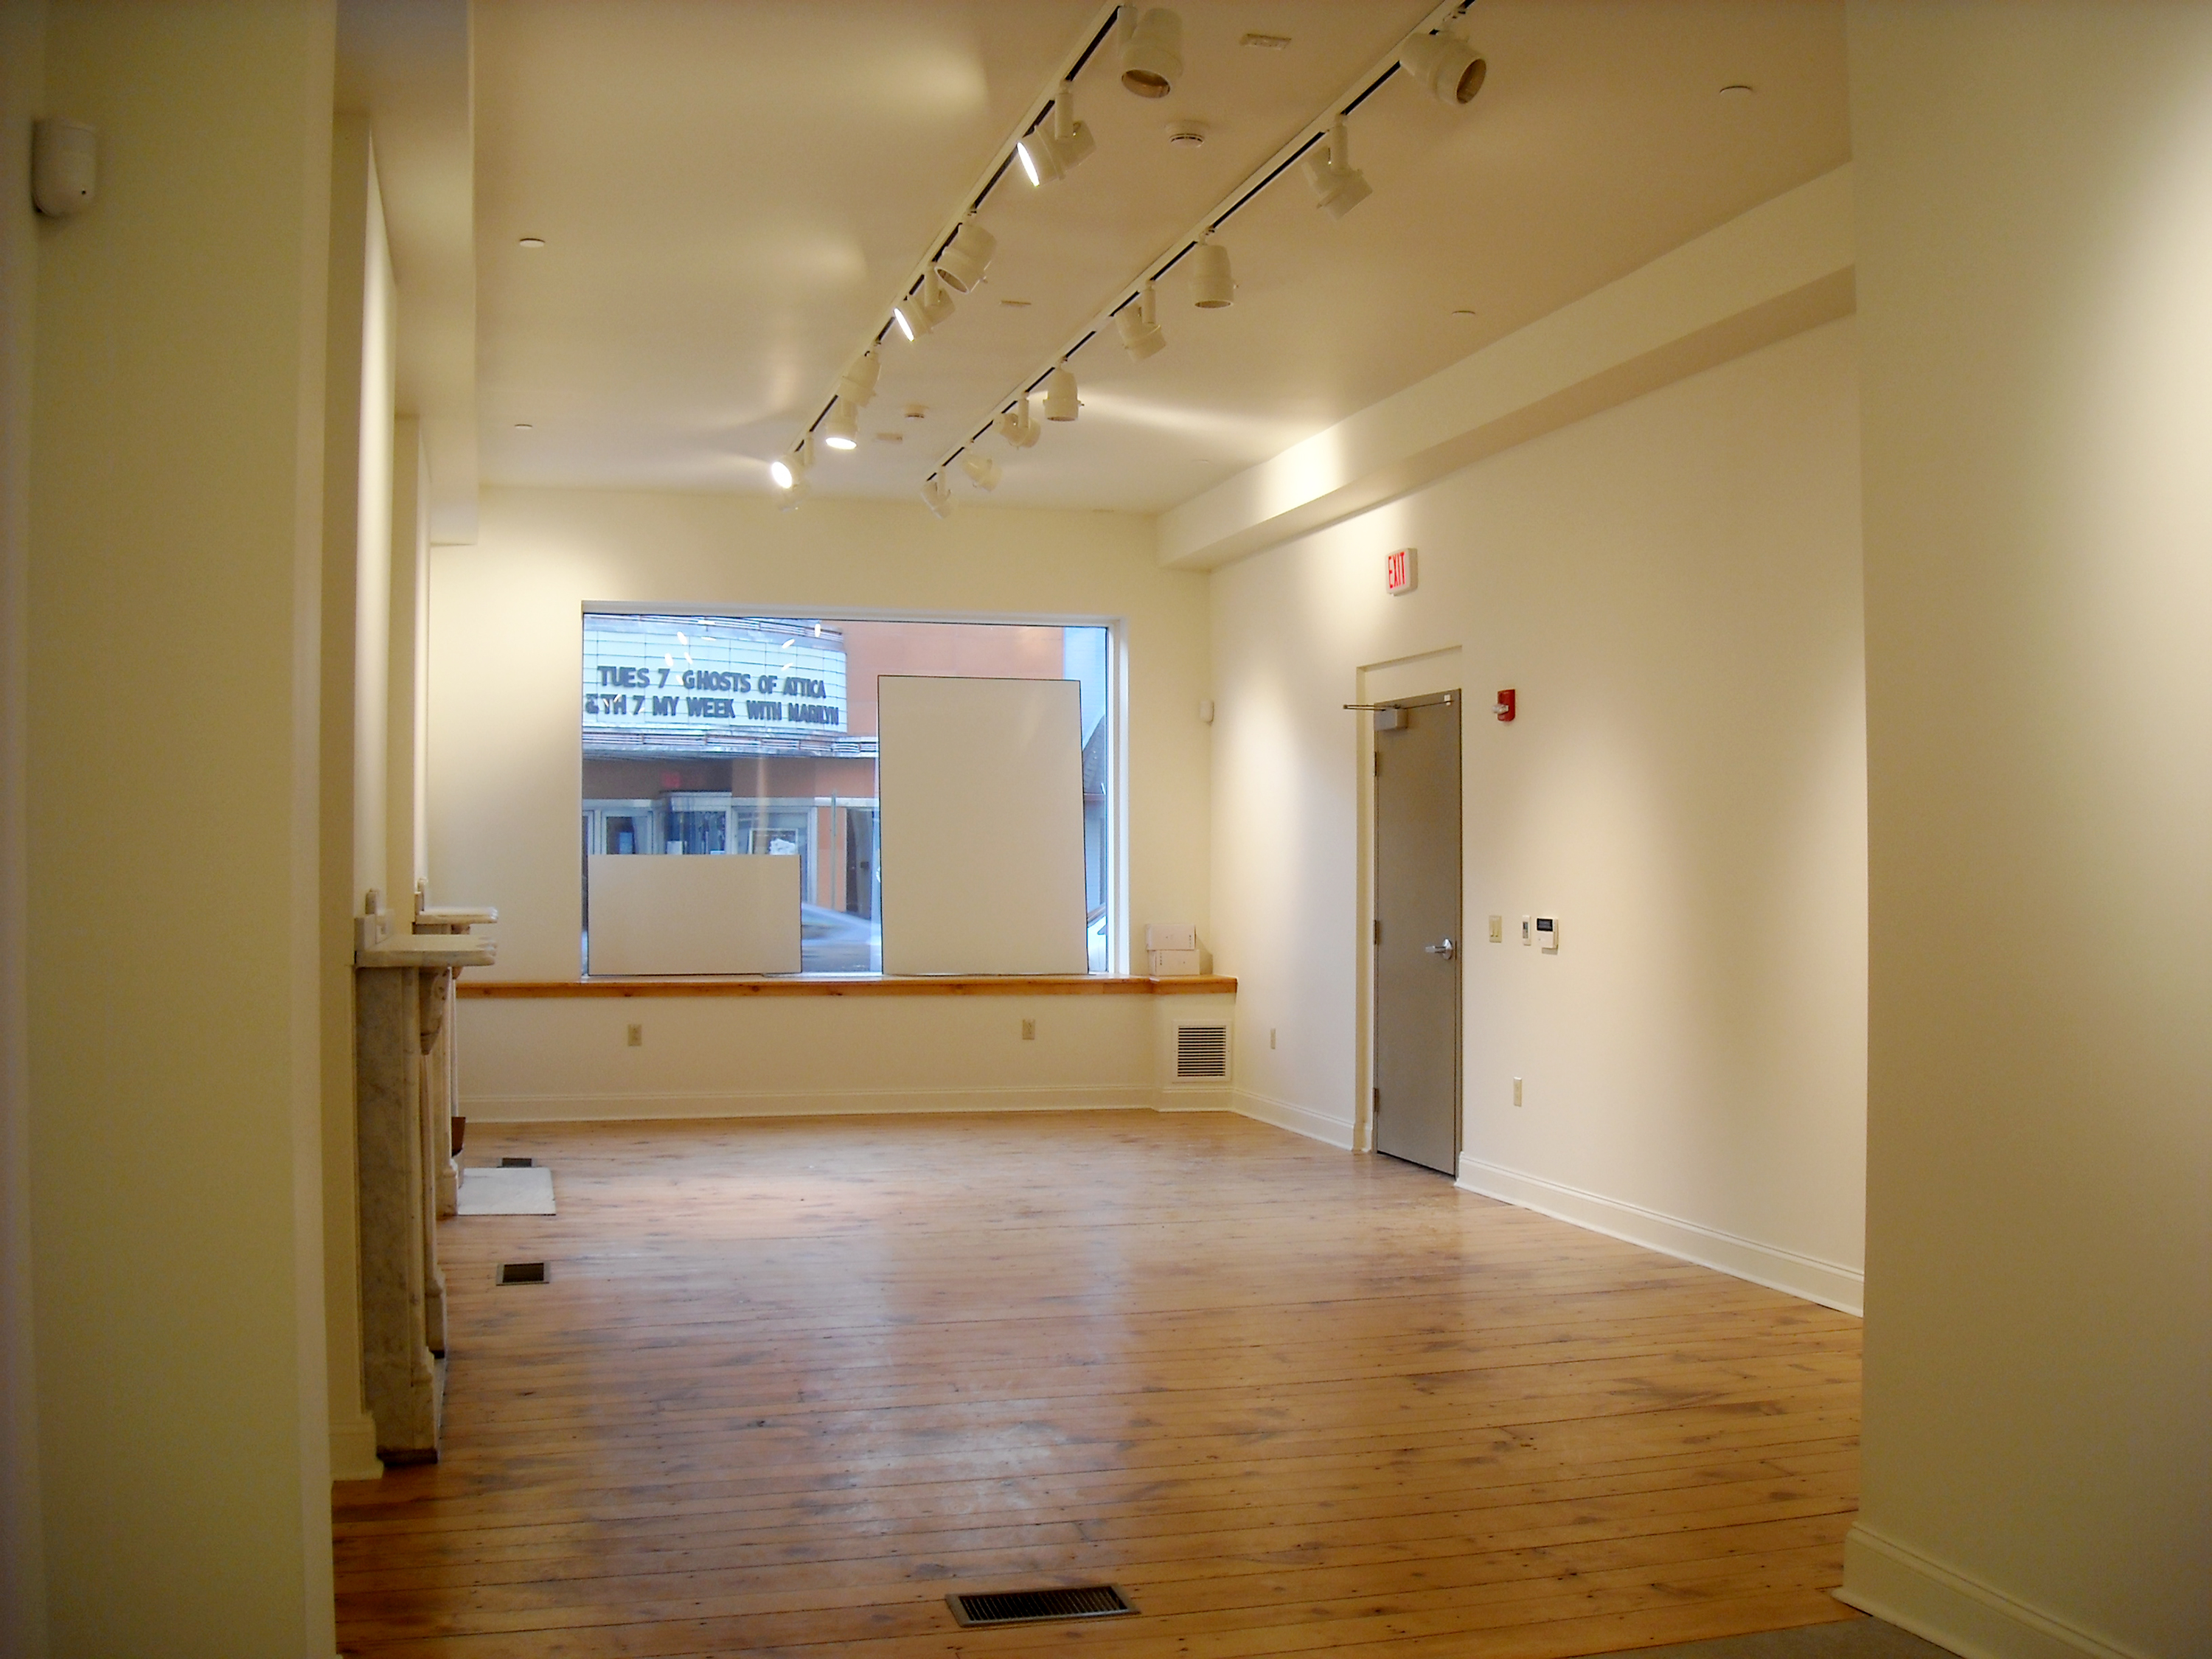 The Samek Art Gallery after renovations at the DeWitt Building at Bucknell University.